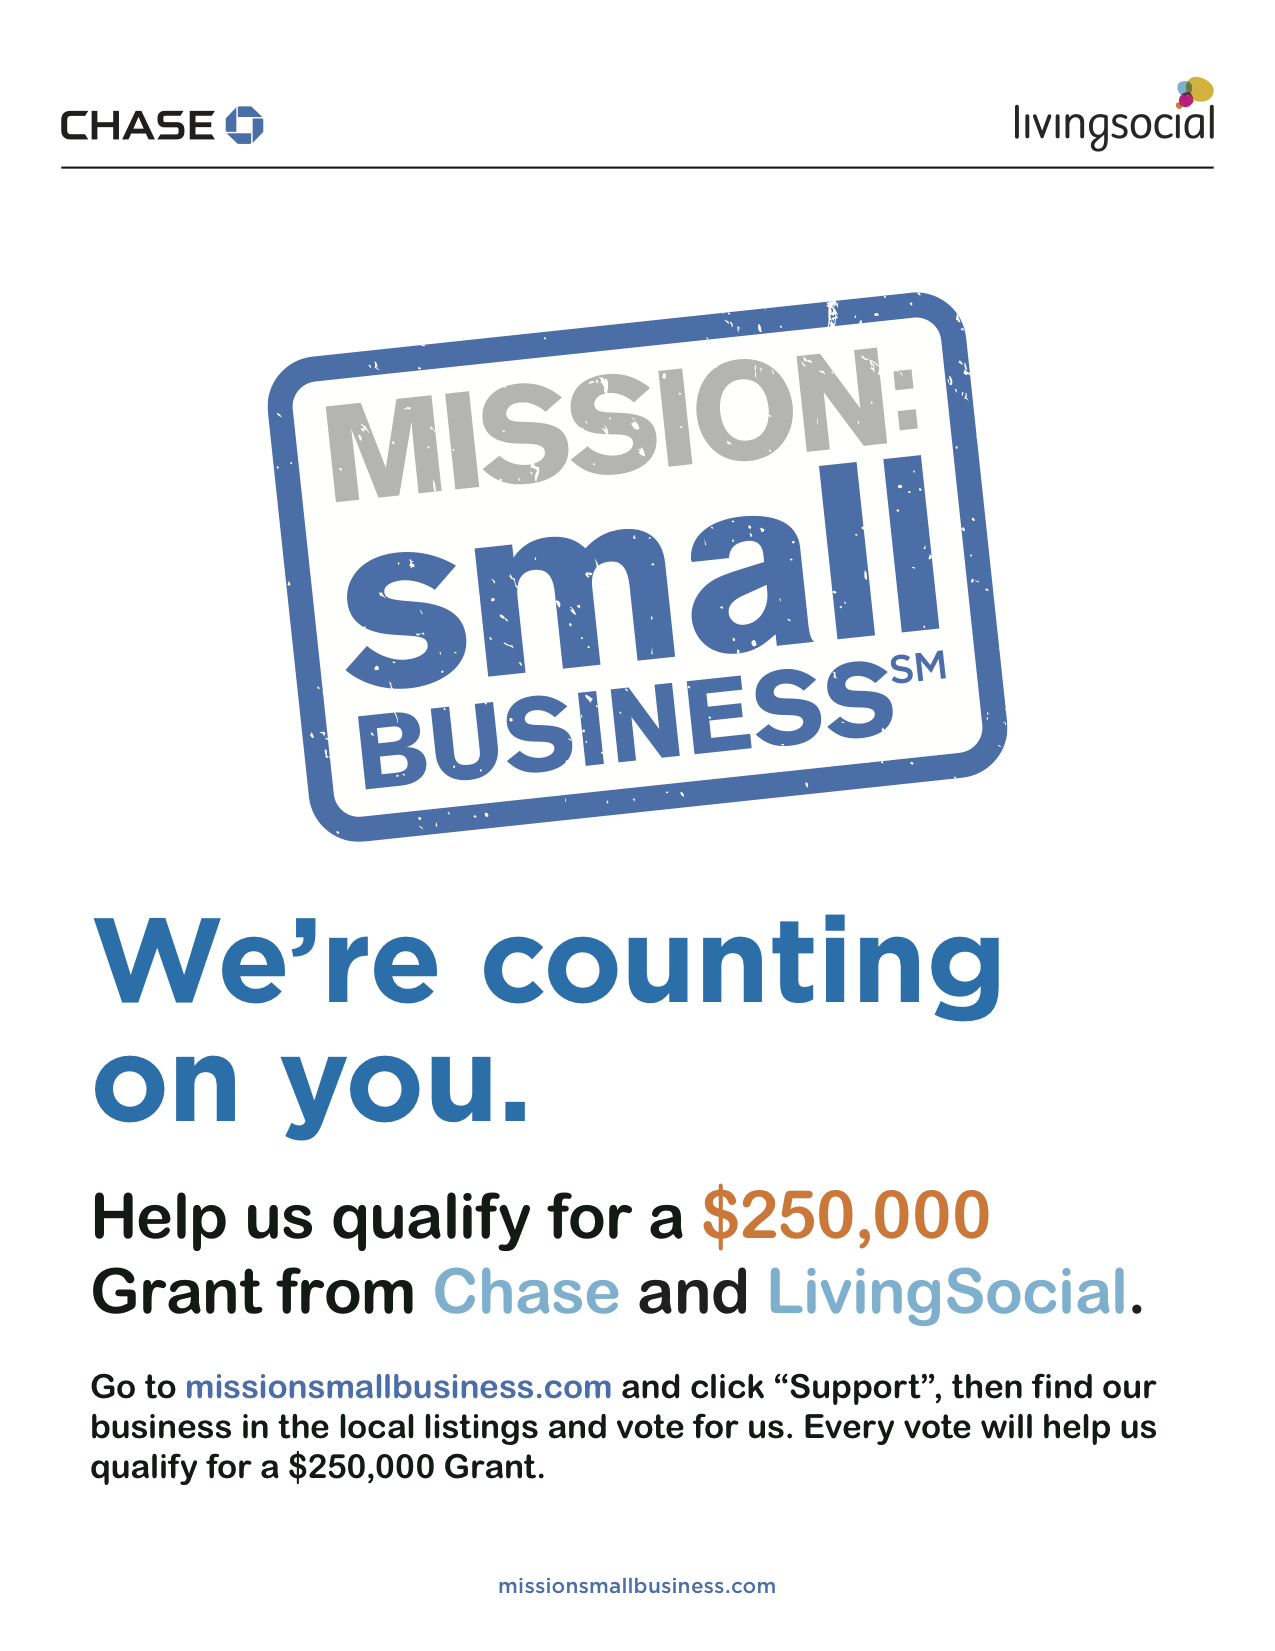 Dallas Wedding Planner, Dallas Event Planner, Dallas Party Planner, Mission: Small Business Grant